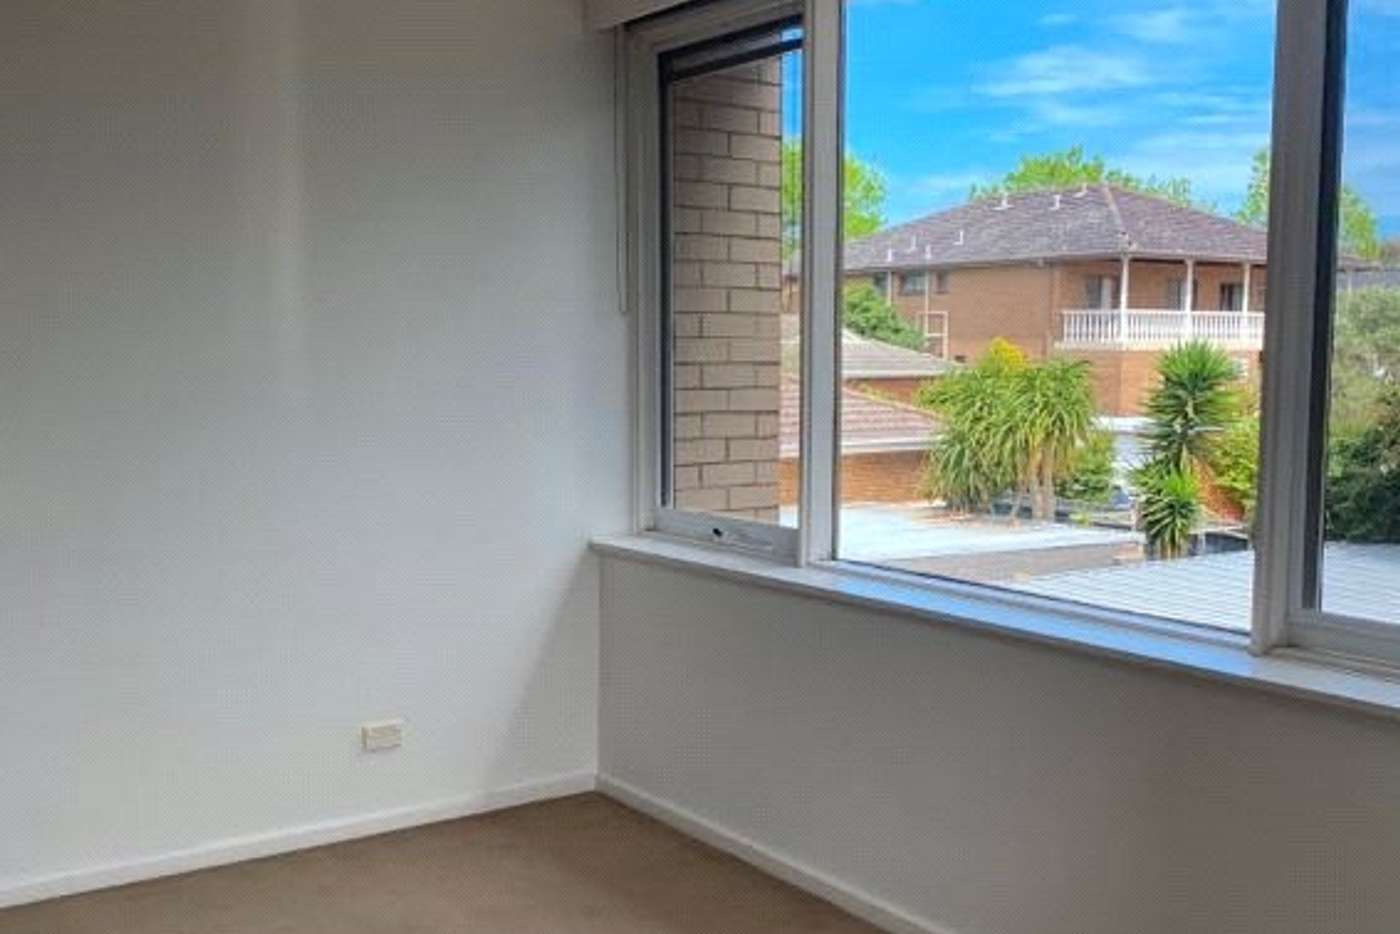 Seventh view of Homely apartment listing, 9/49 Wilson Street, Cheltenham VIC 3192